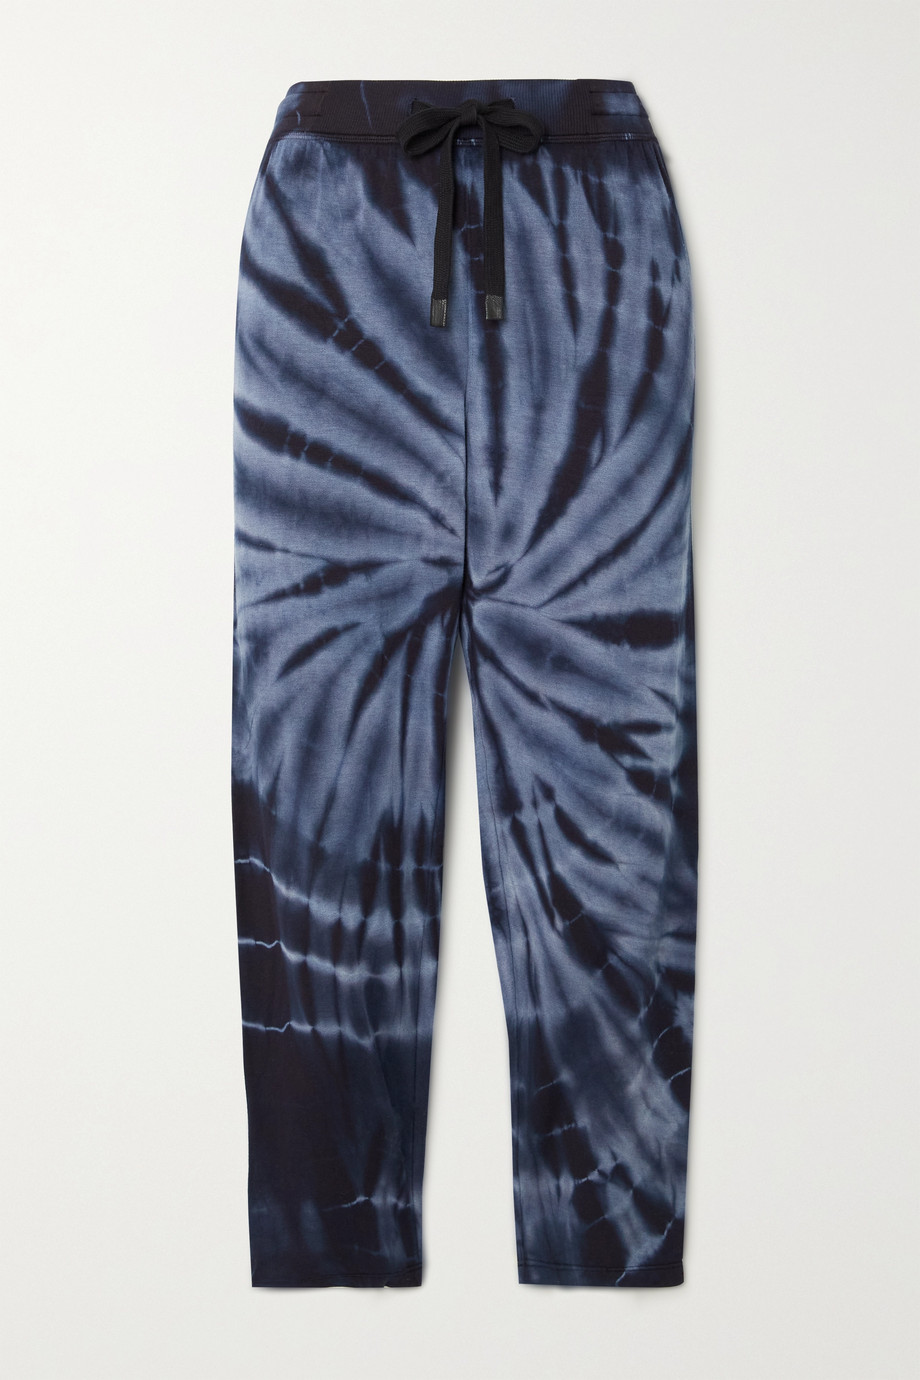 SPLITS59 Reena tie-dyed stretch-modal track pants